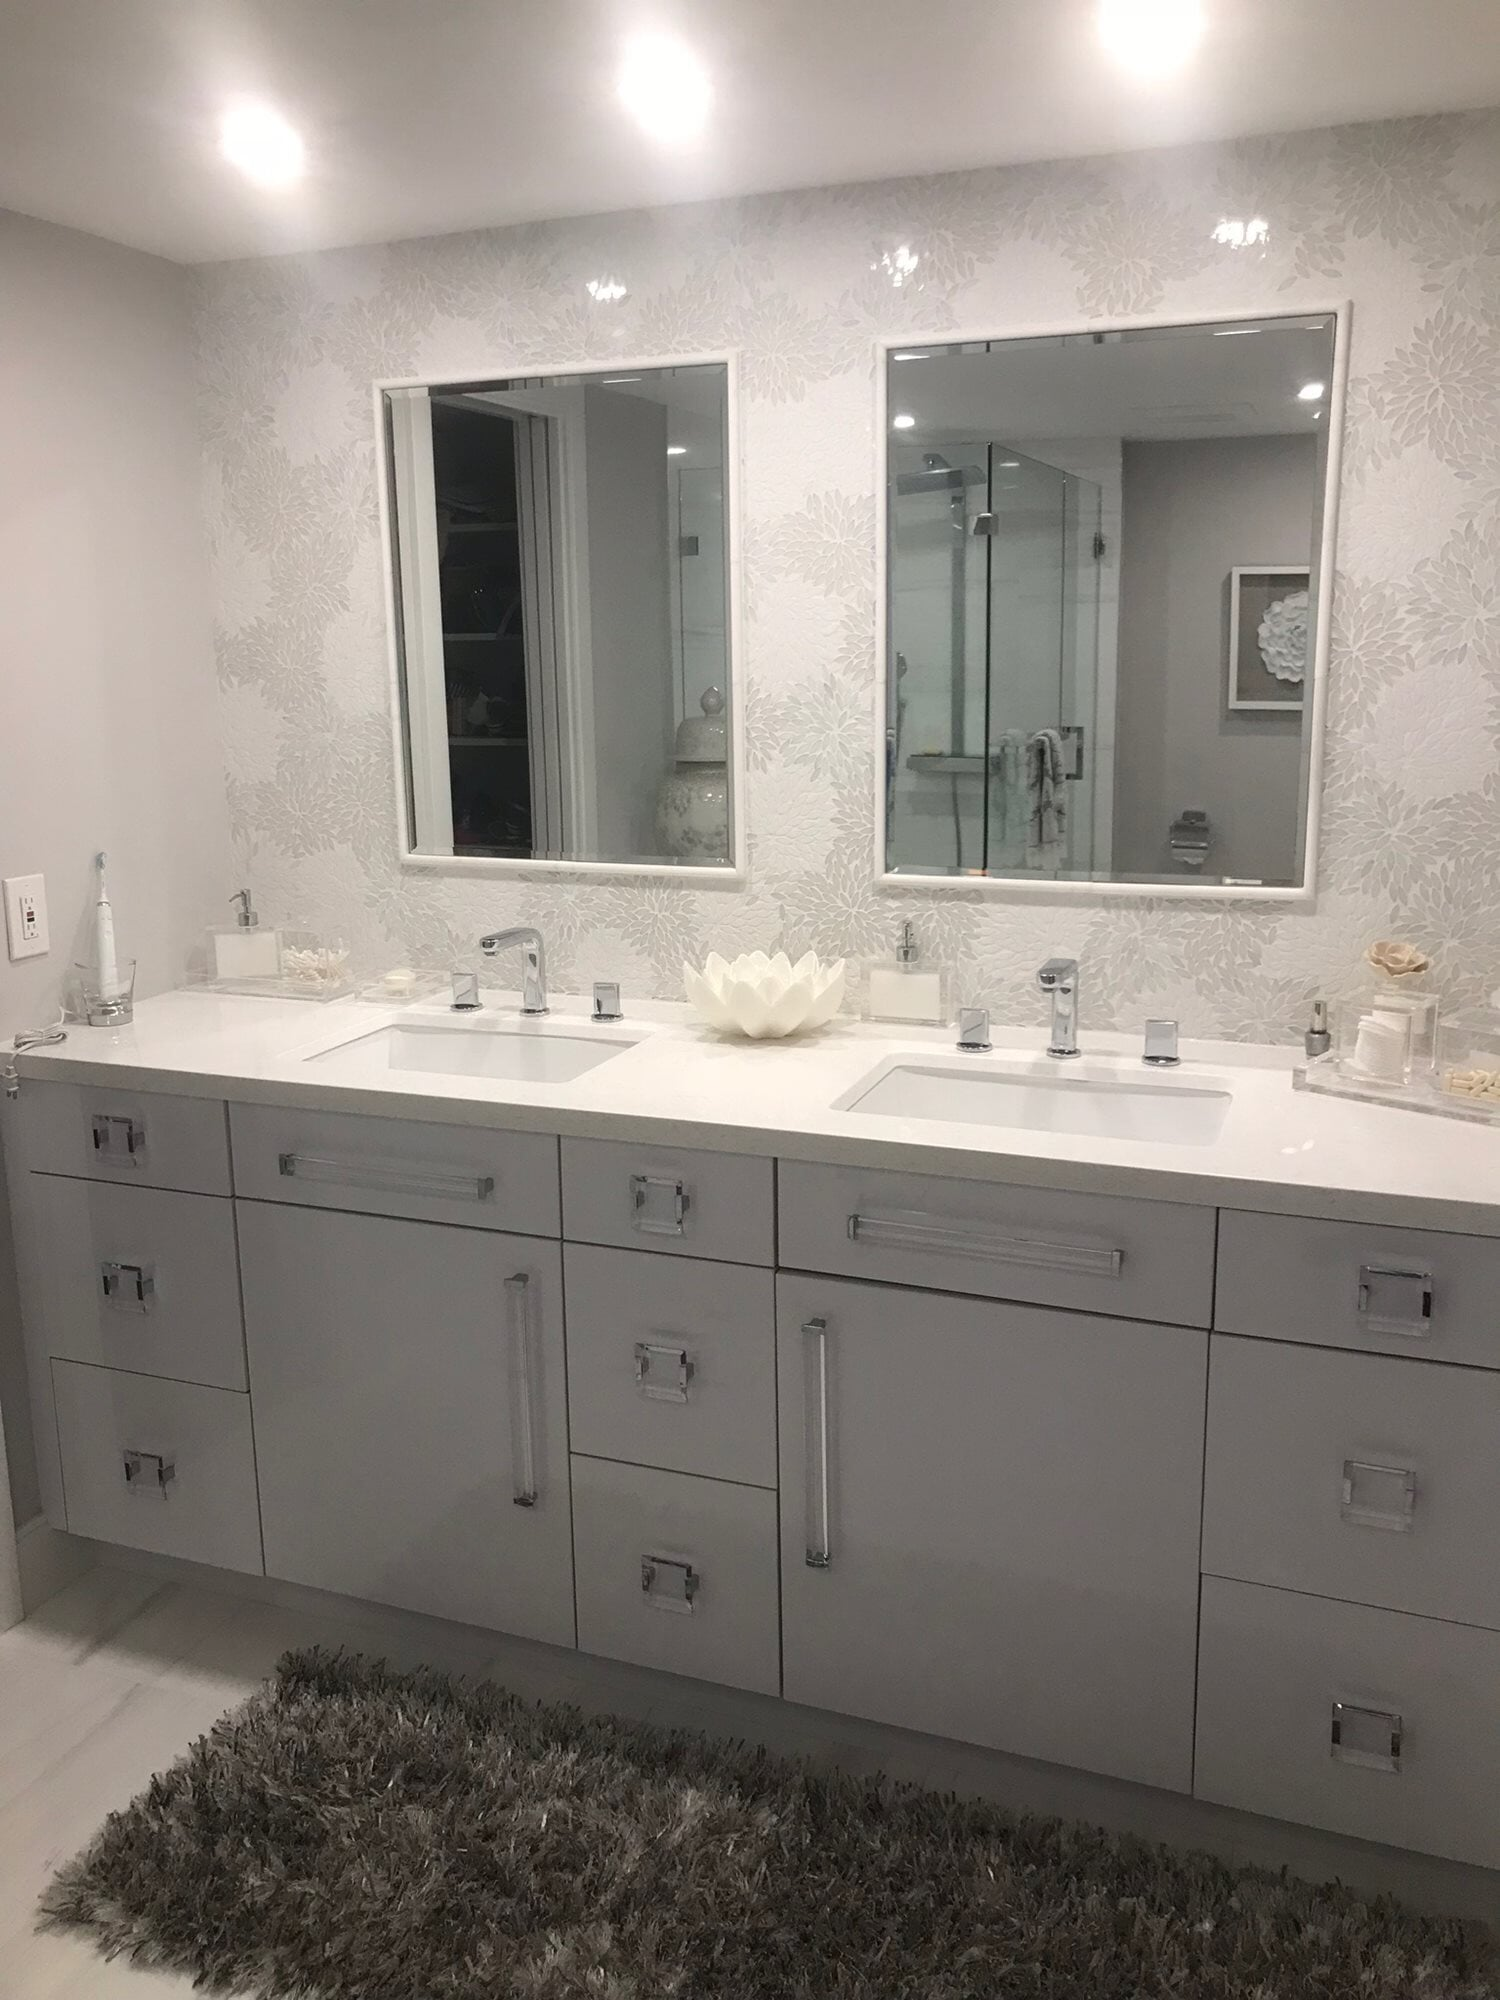 Bathroom remodeling in Hobe Sound, FL from Floors For You Kitchen & Bath